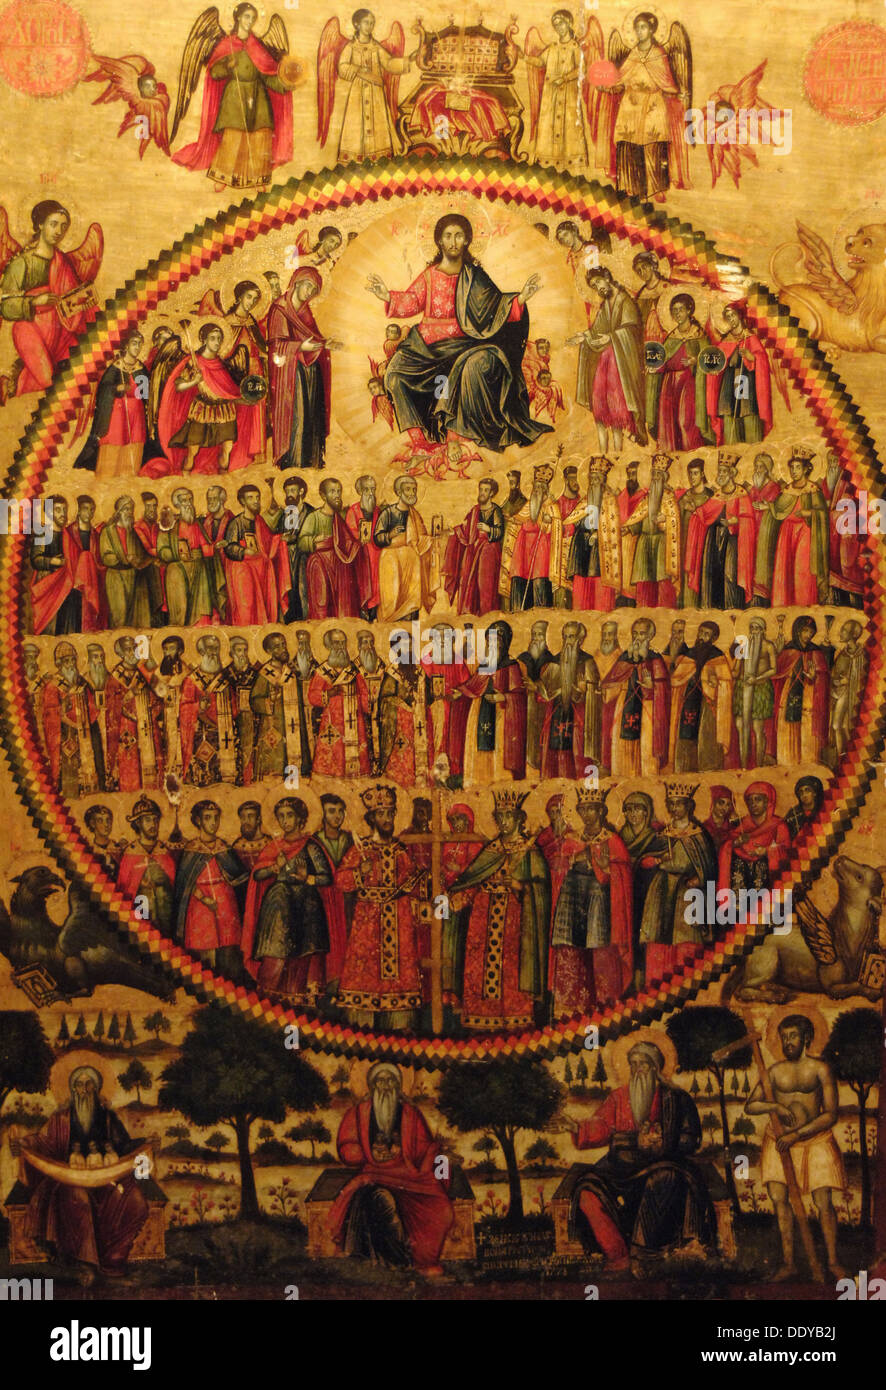 All the Saints, 1778, by Zografi brothers. National Museum of Medieval Art. Korce. Republic of Albania. - Stock Image